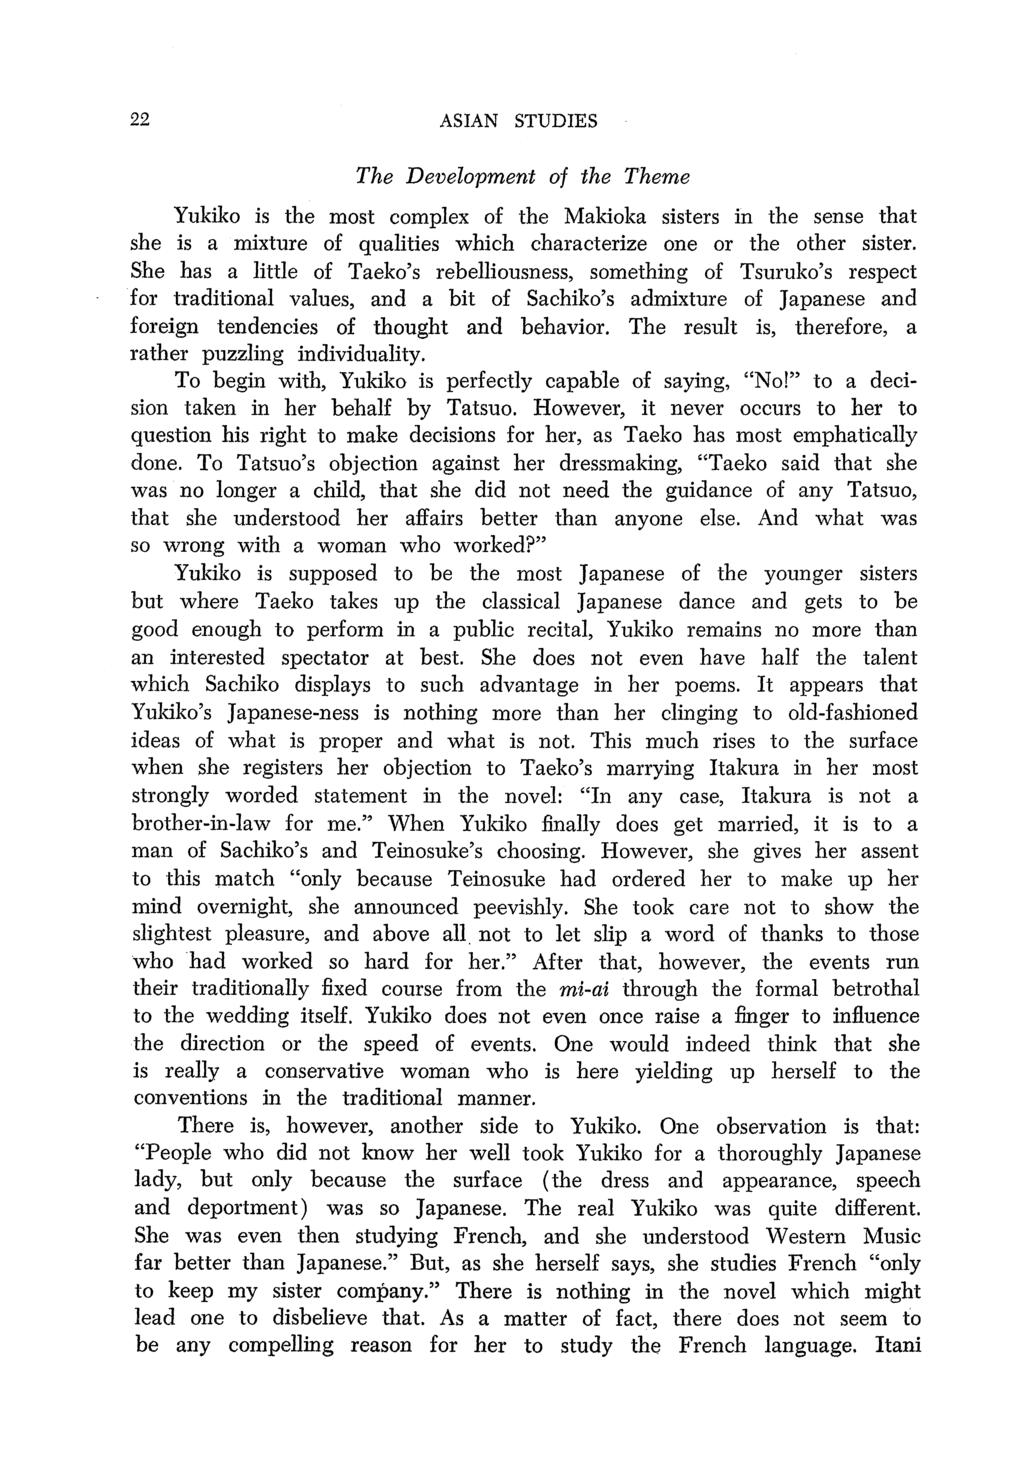 The asian center asian studies pdf 22 asian studies the development of the theme yukiko is the most complex of the makioka fandeluxe Image collections